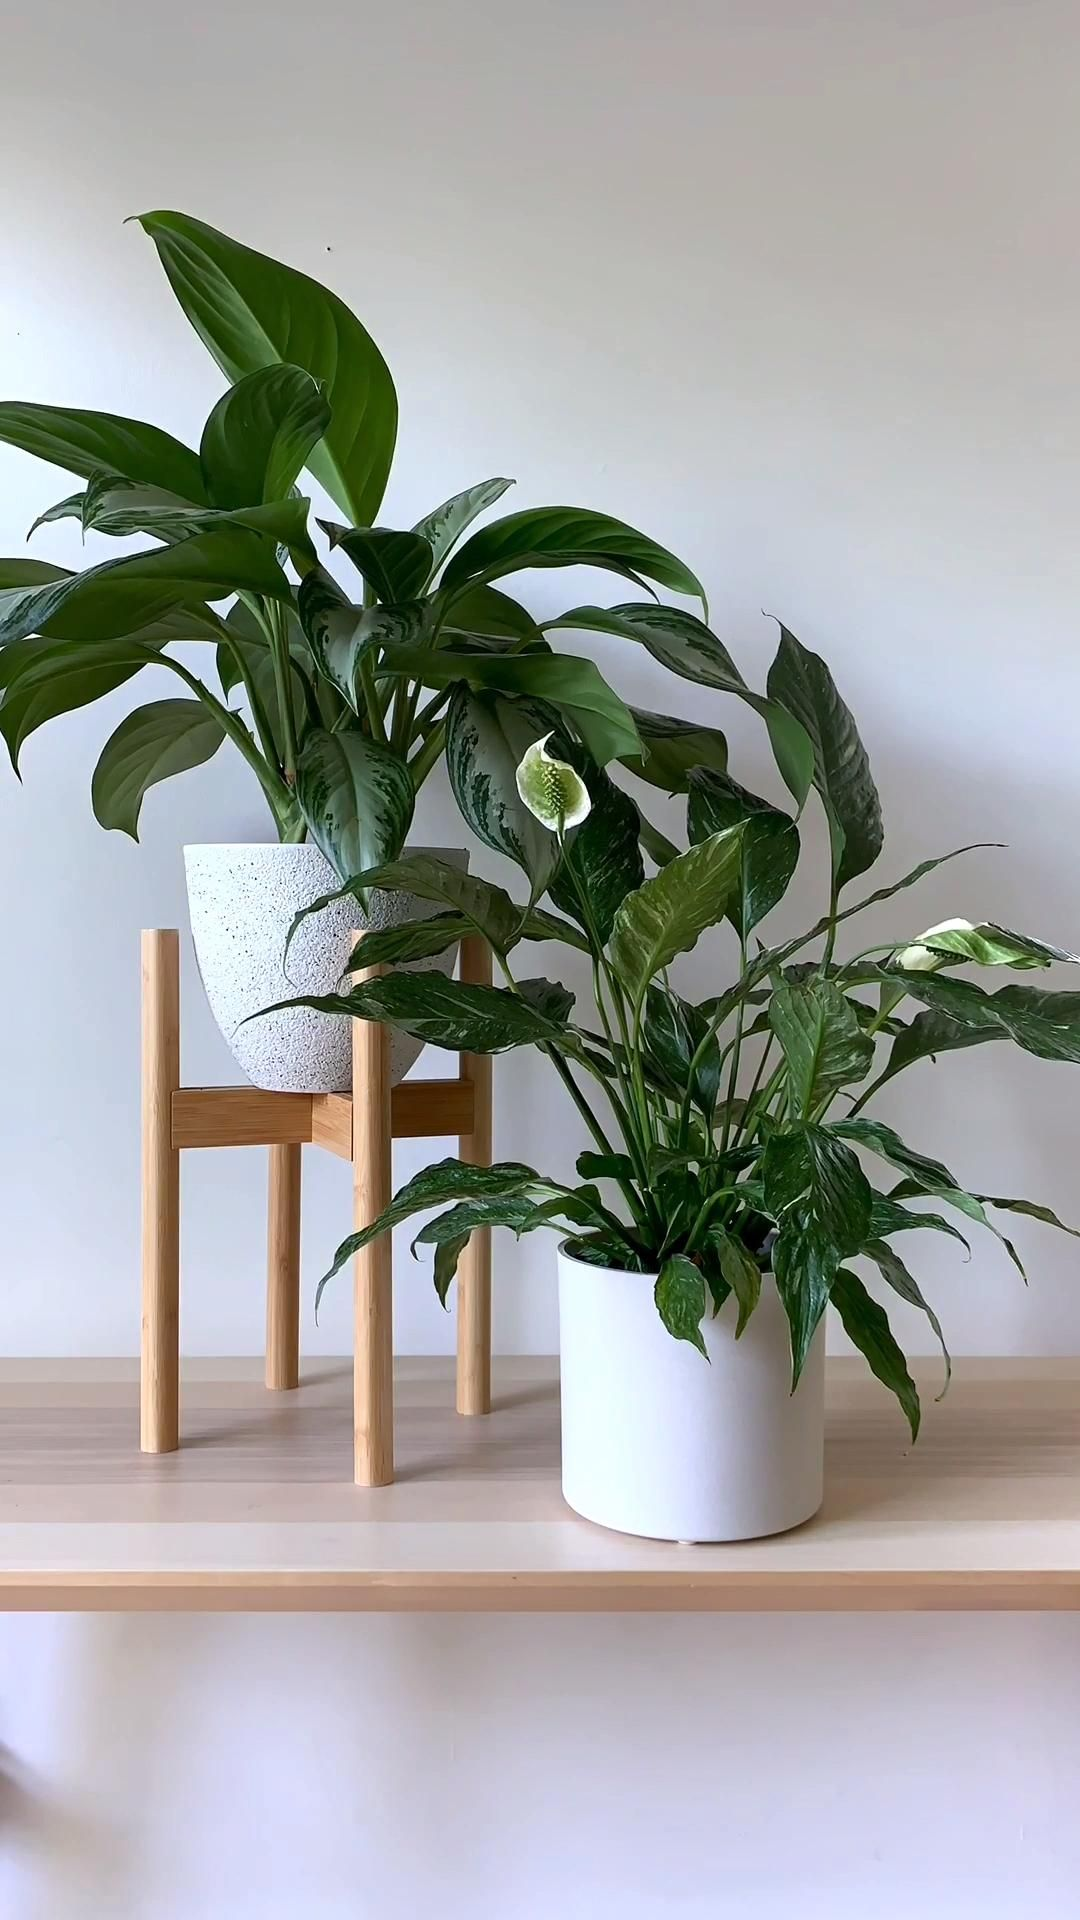 Photo of Indoor Houseplants Time-Lapse | Chinese Everg